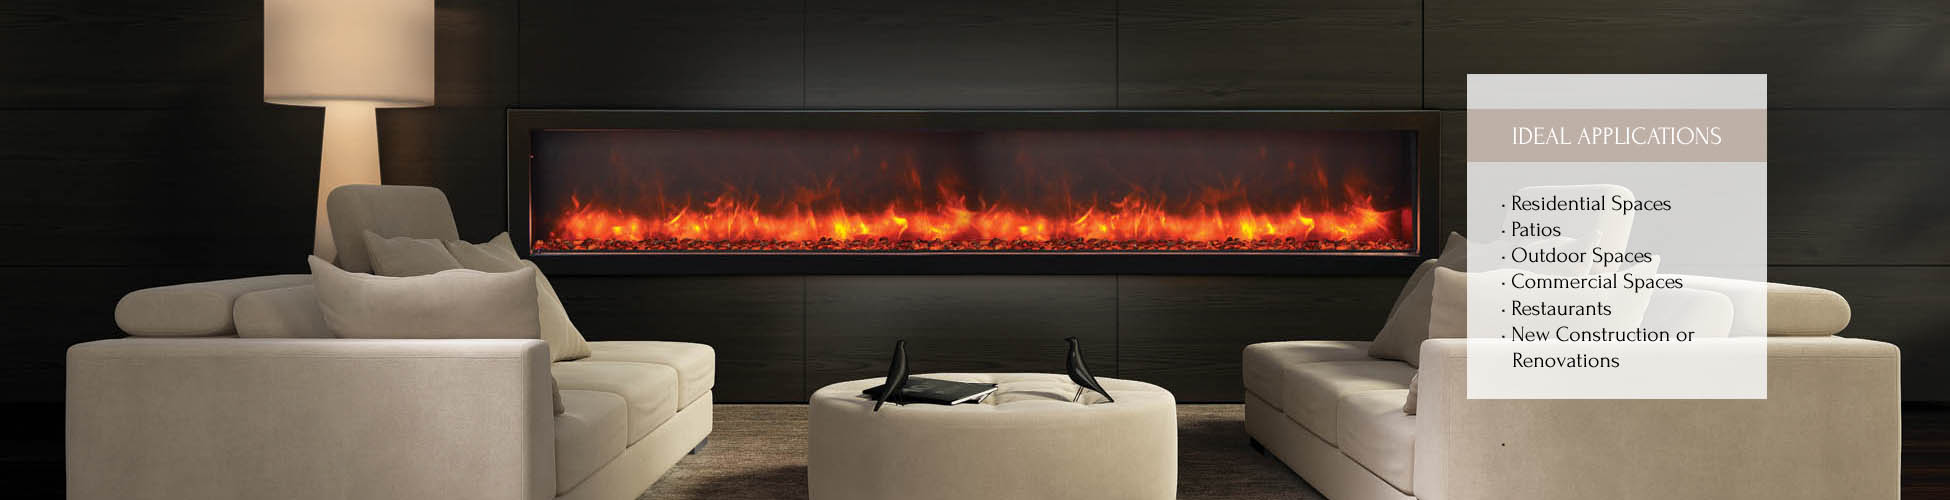 indoor fireplaces sale l for decorative fireplace electric buy on